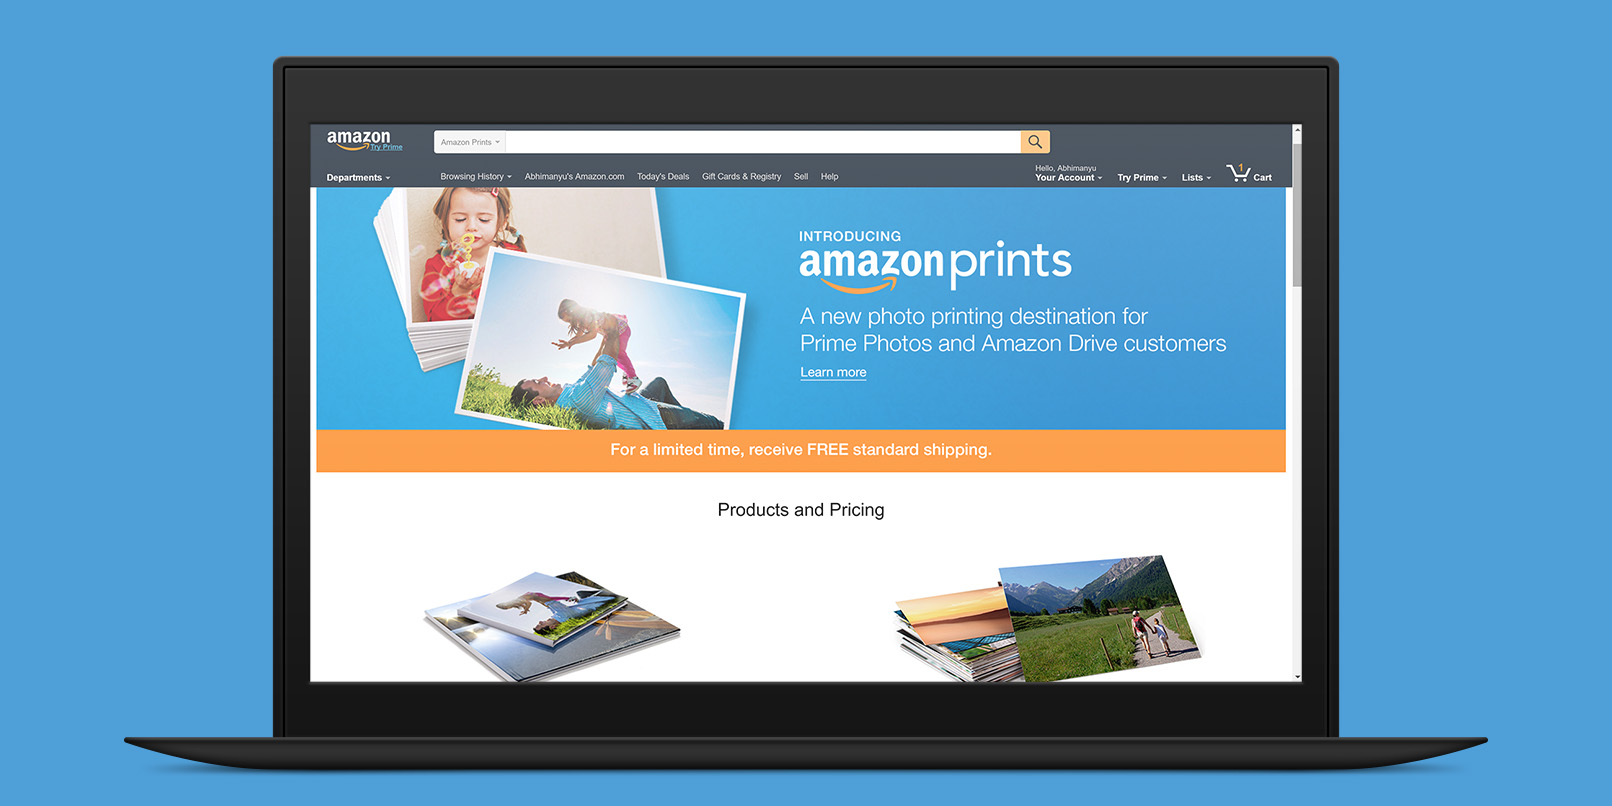 Amazon will now print your photos for you for as little as 9c